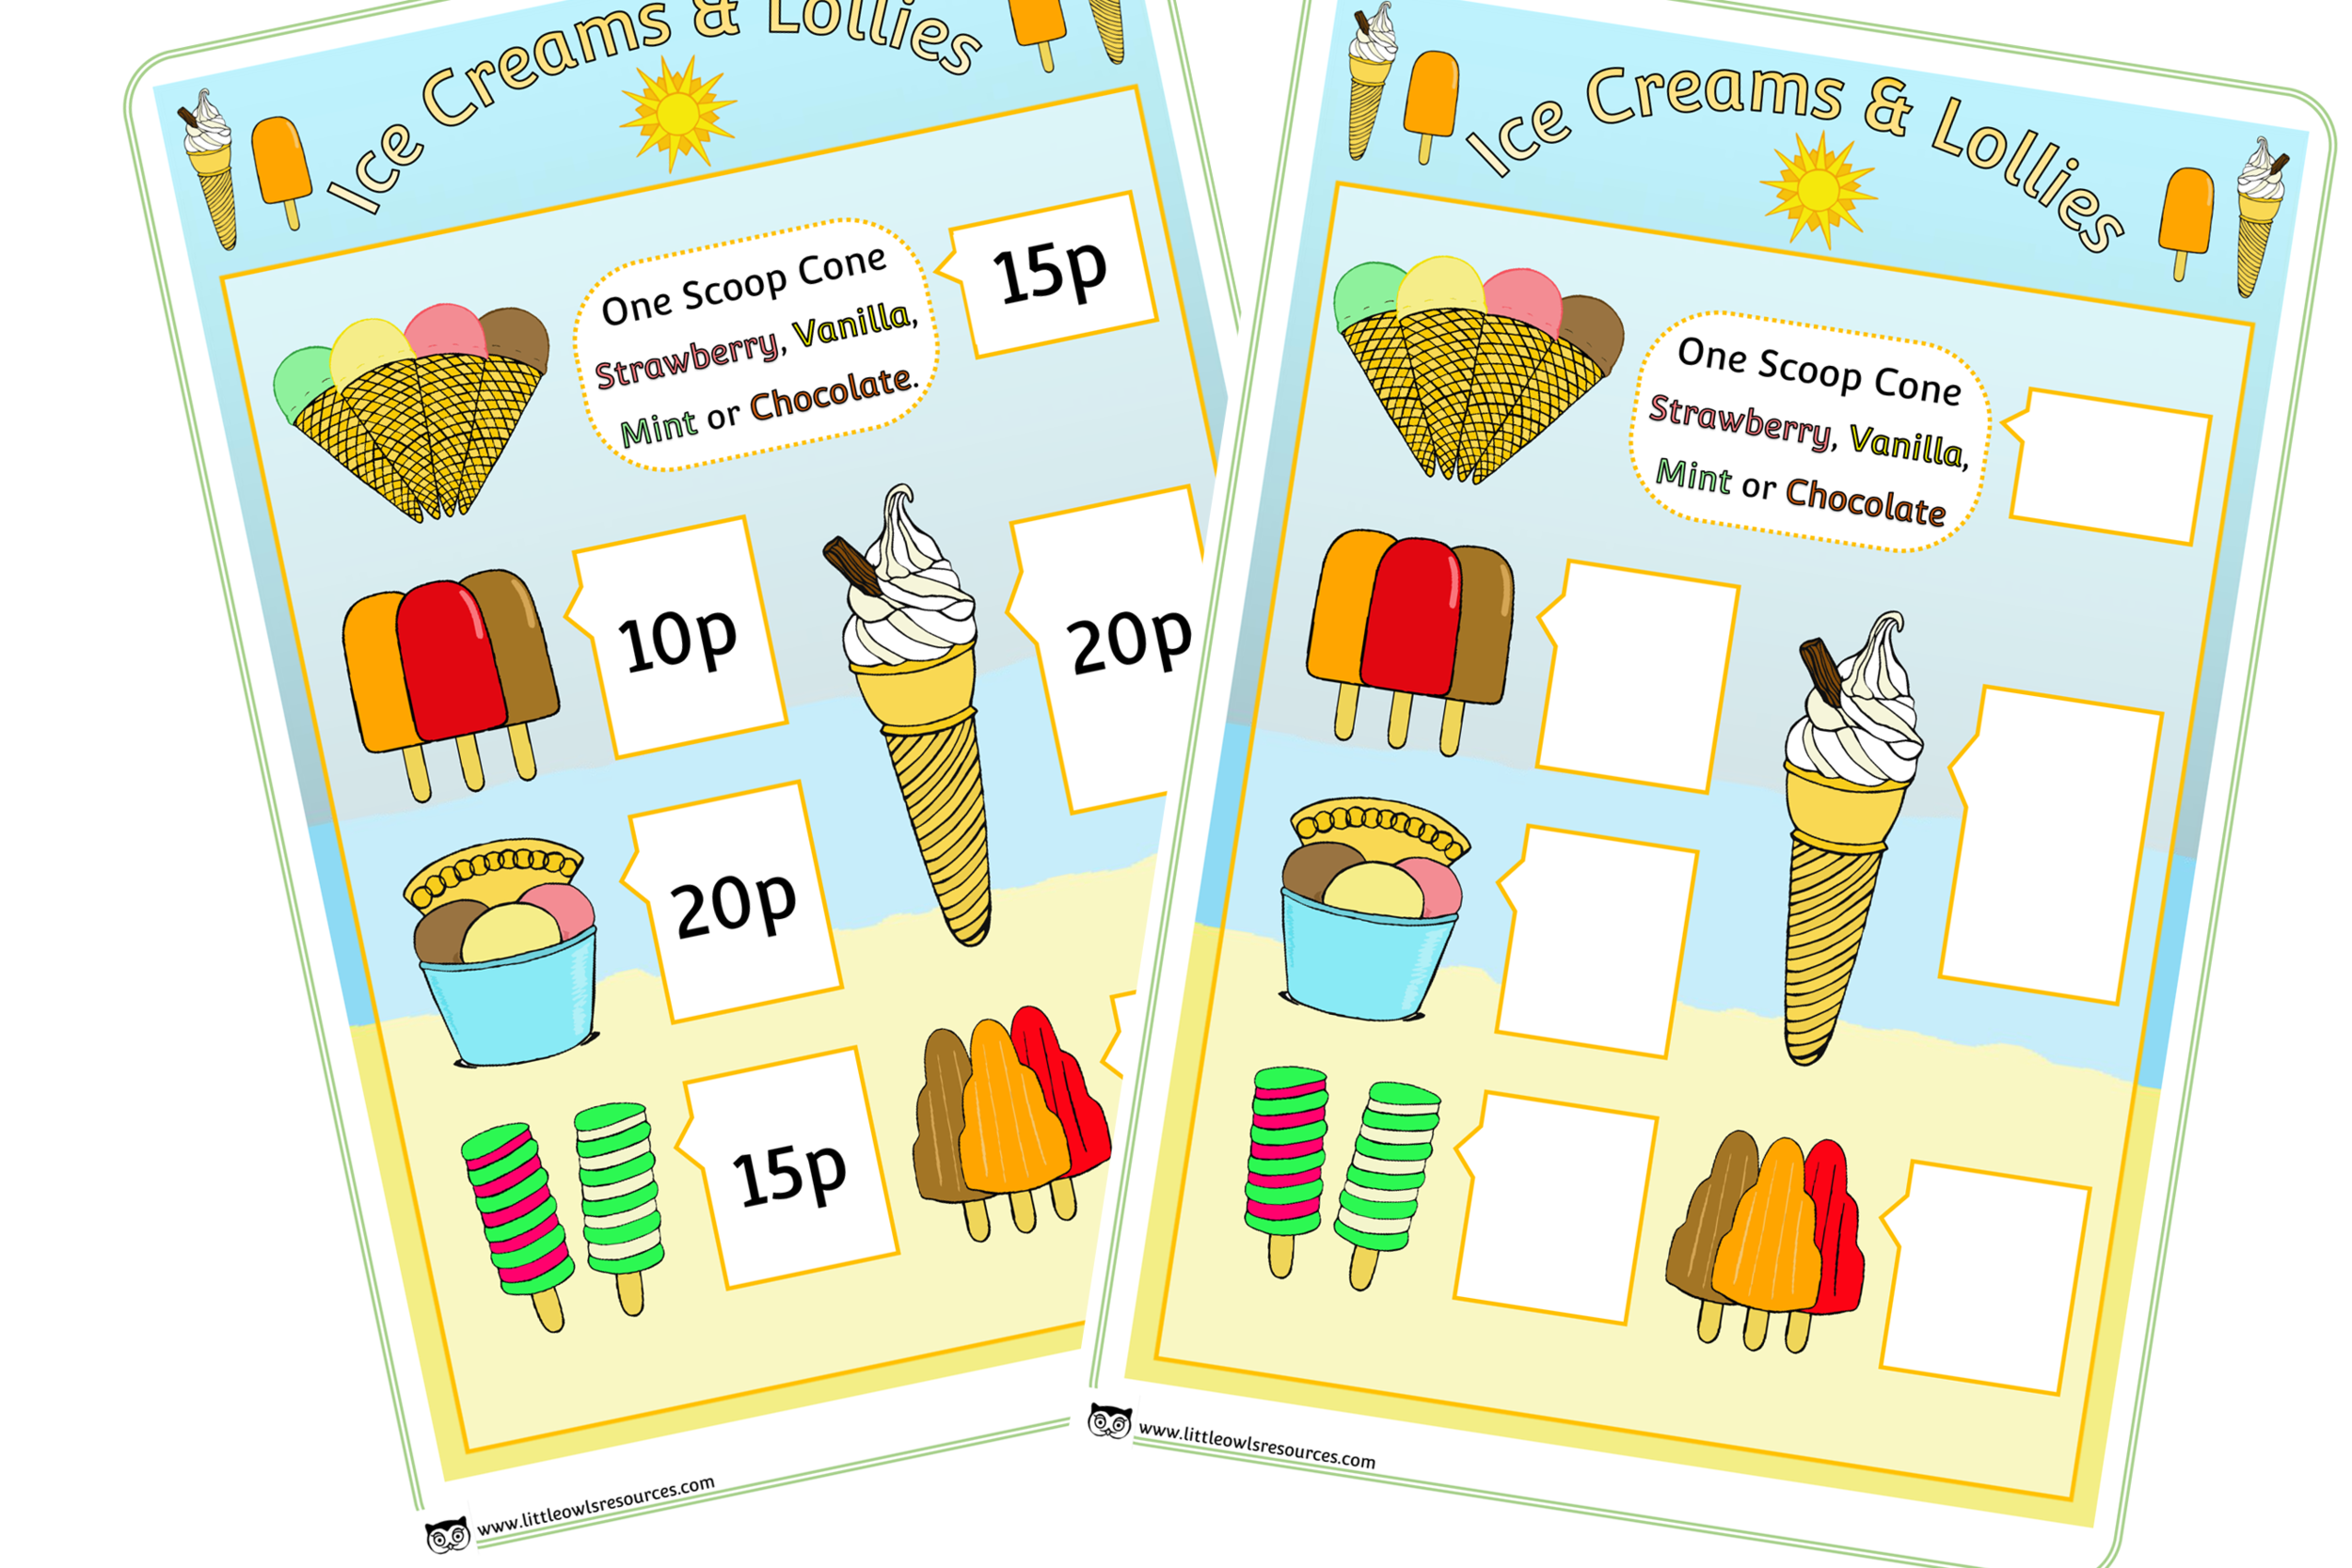 FREE Ice Cream Shop role-play Menu printable activity/game